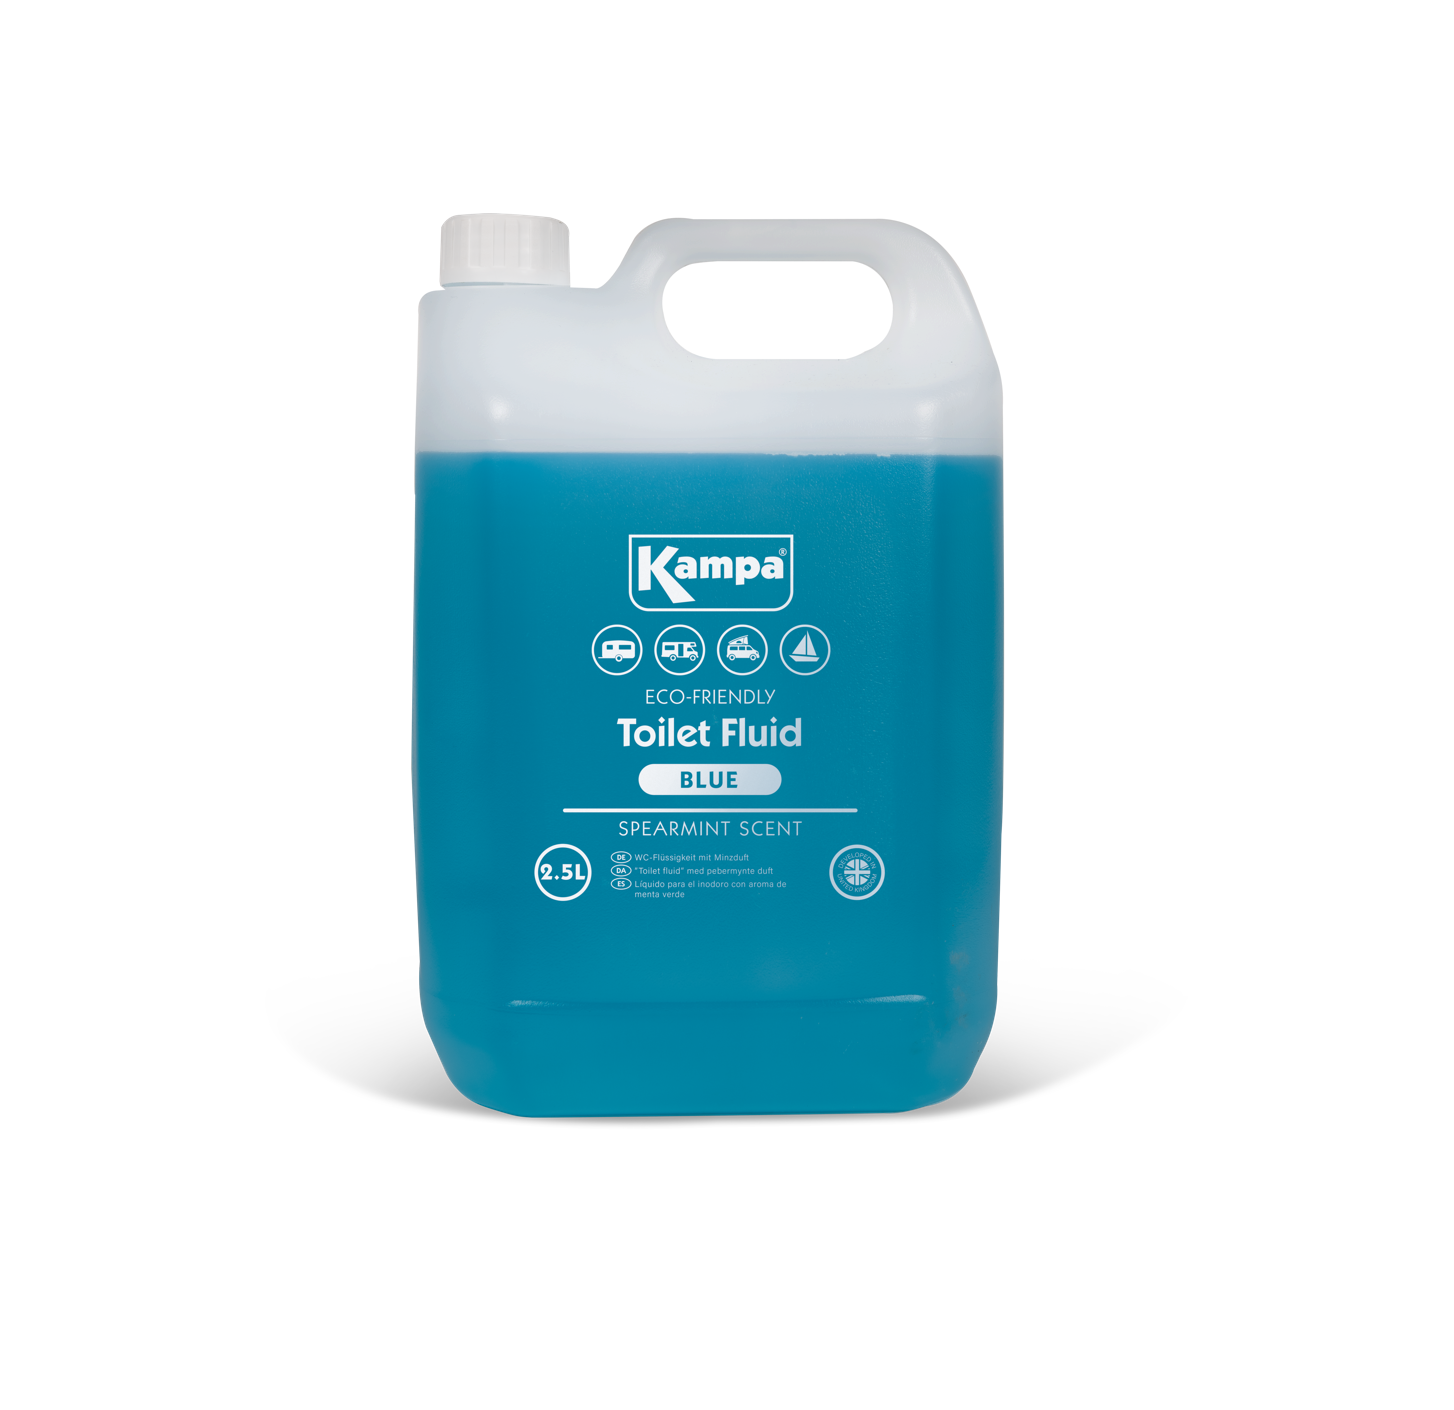 Kampa toilet fluid spearmint